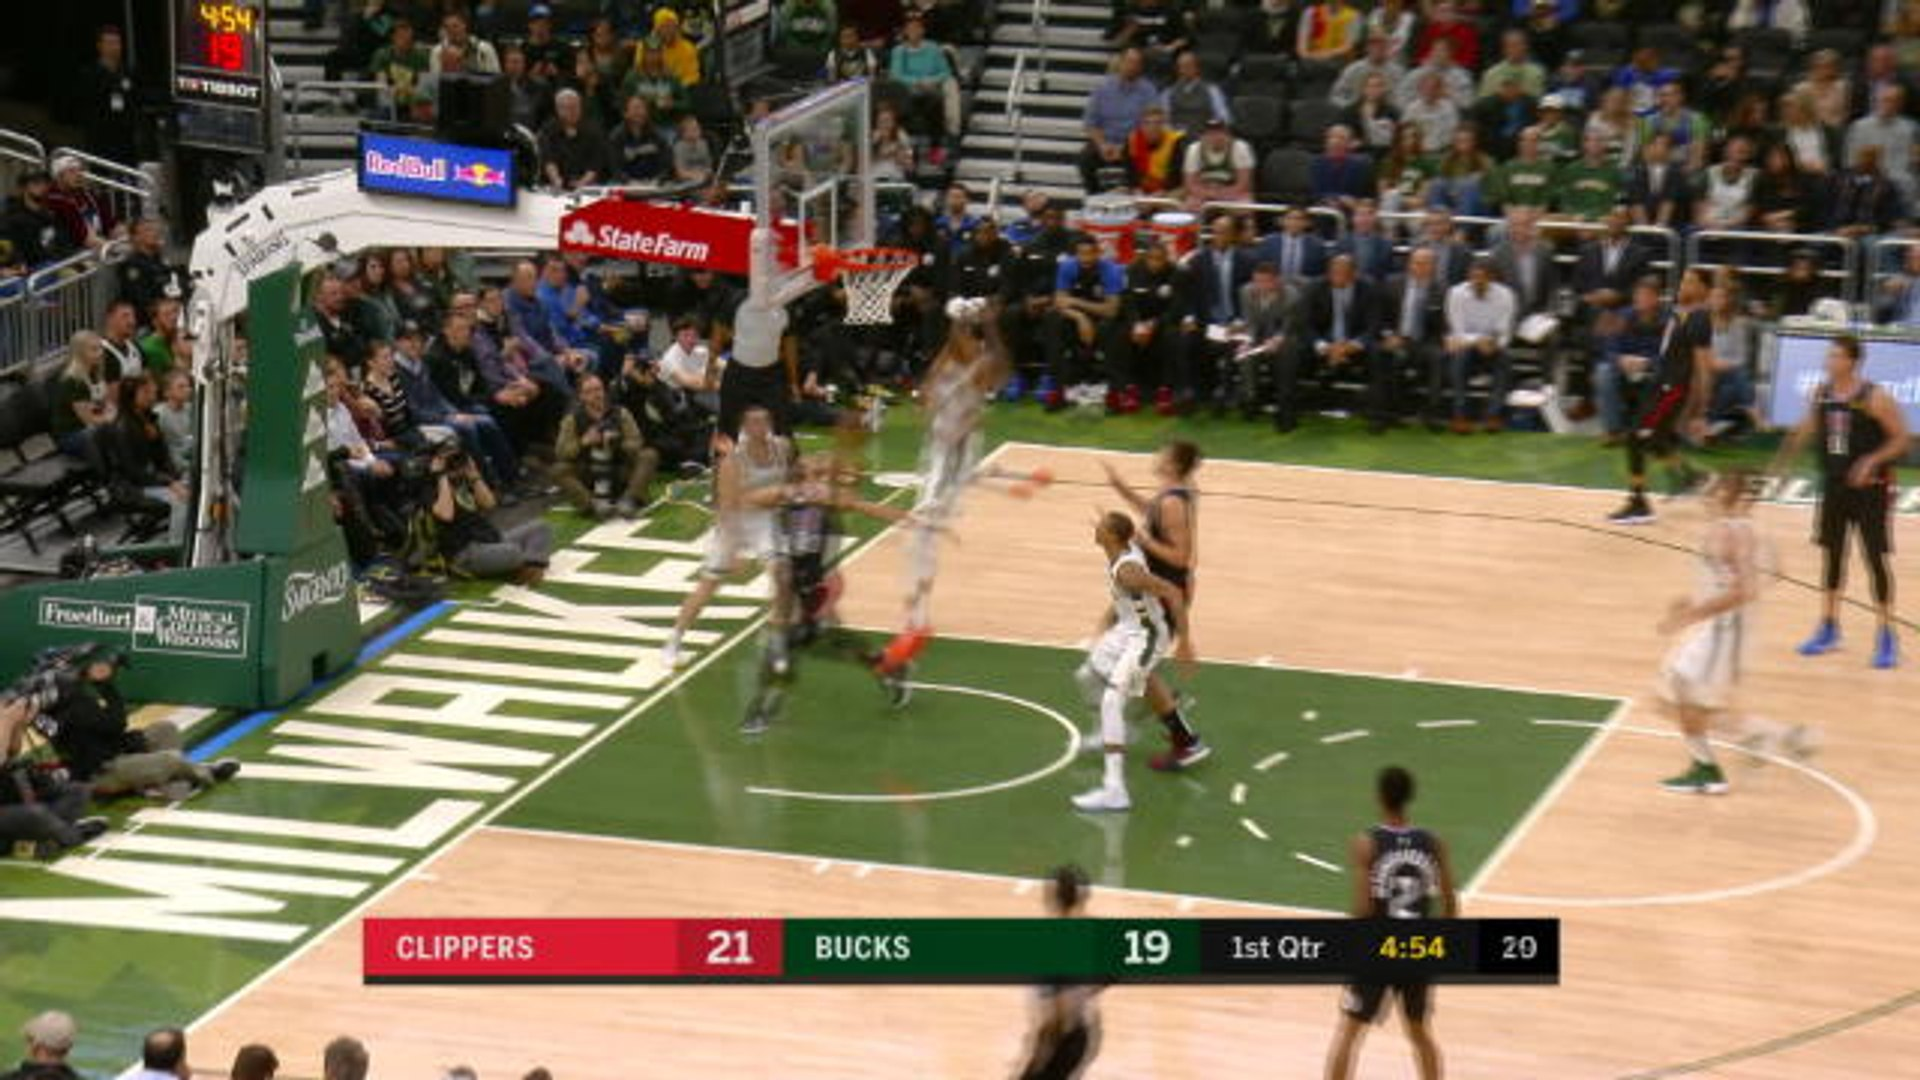 It's a bird, it's a plane! - Giannis with huge block to set up Bucks attack